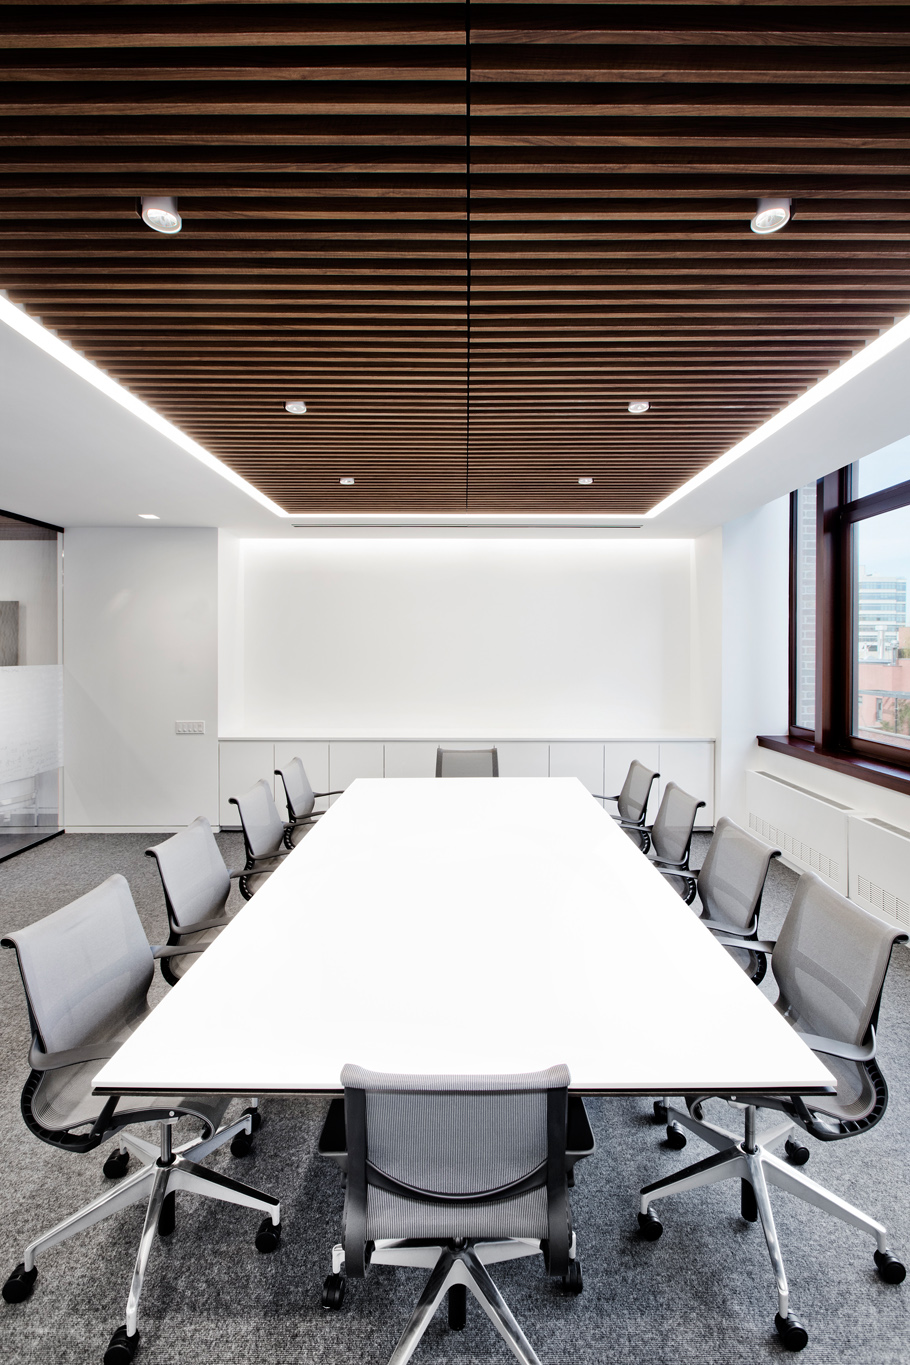 Conference Room Lighting Design: Fogarty Finger » HAP Capital